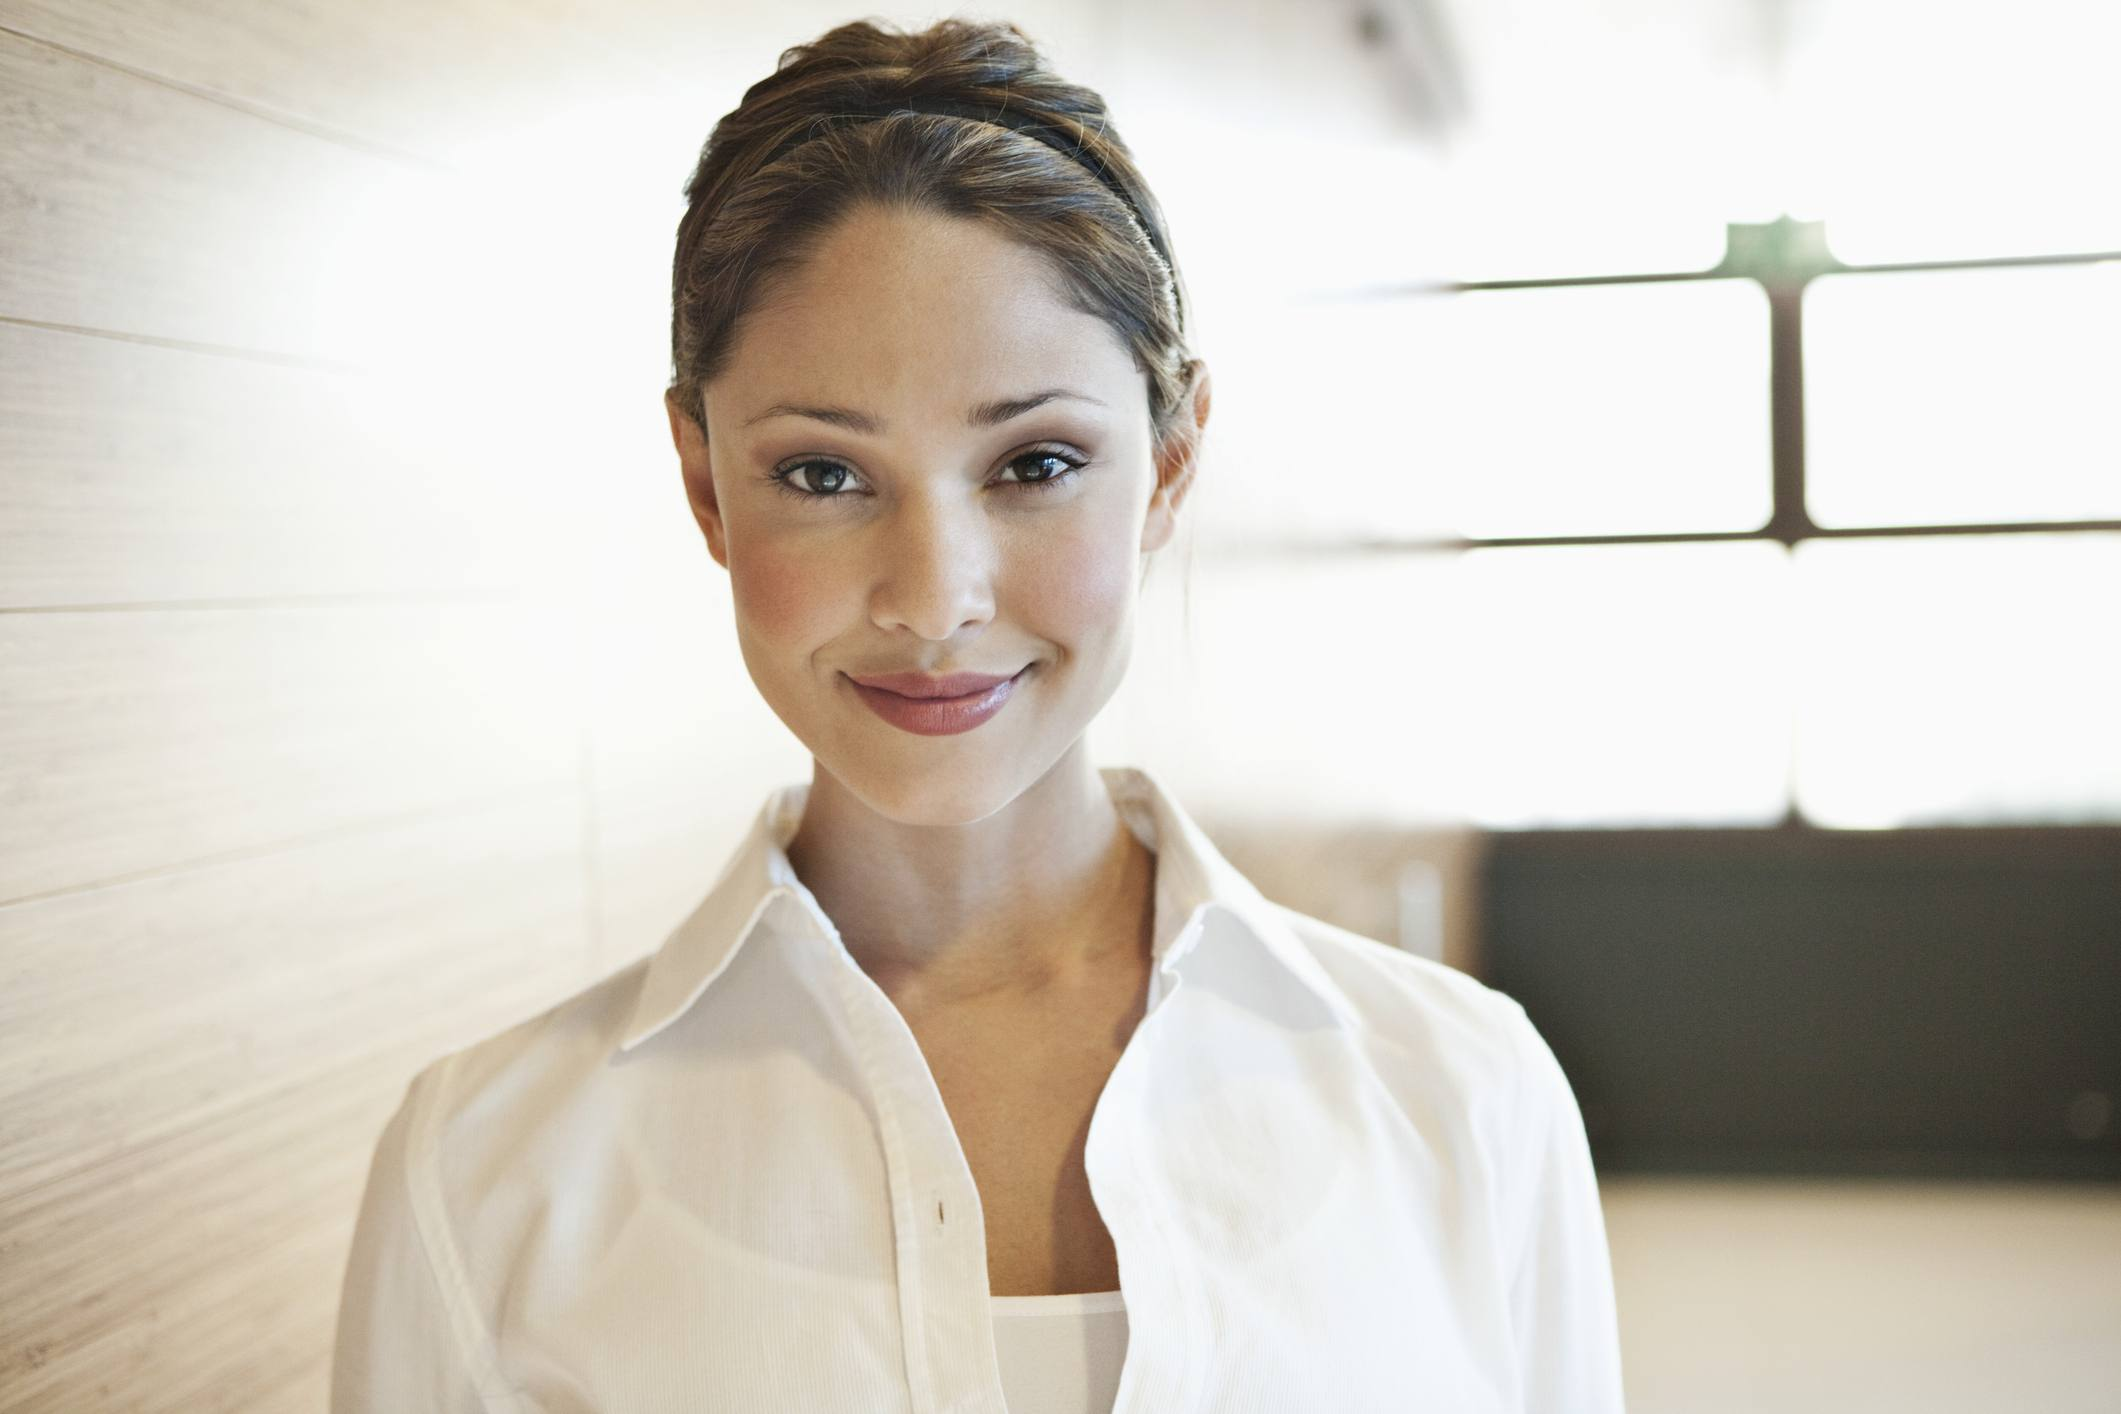 Business woman wearing button down